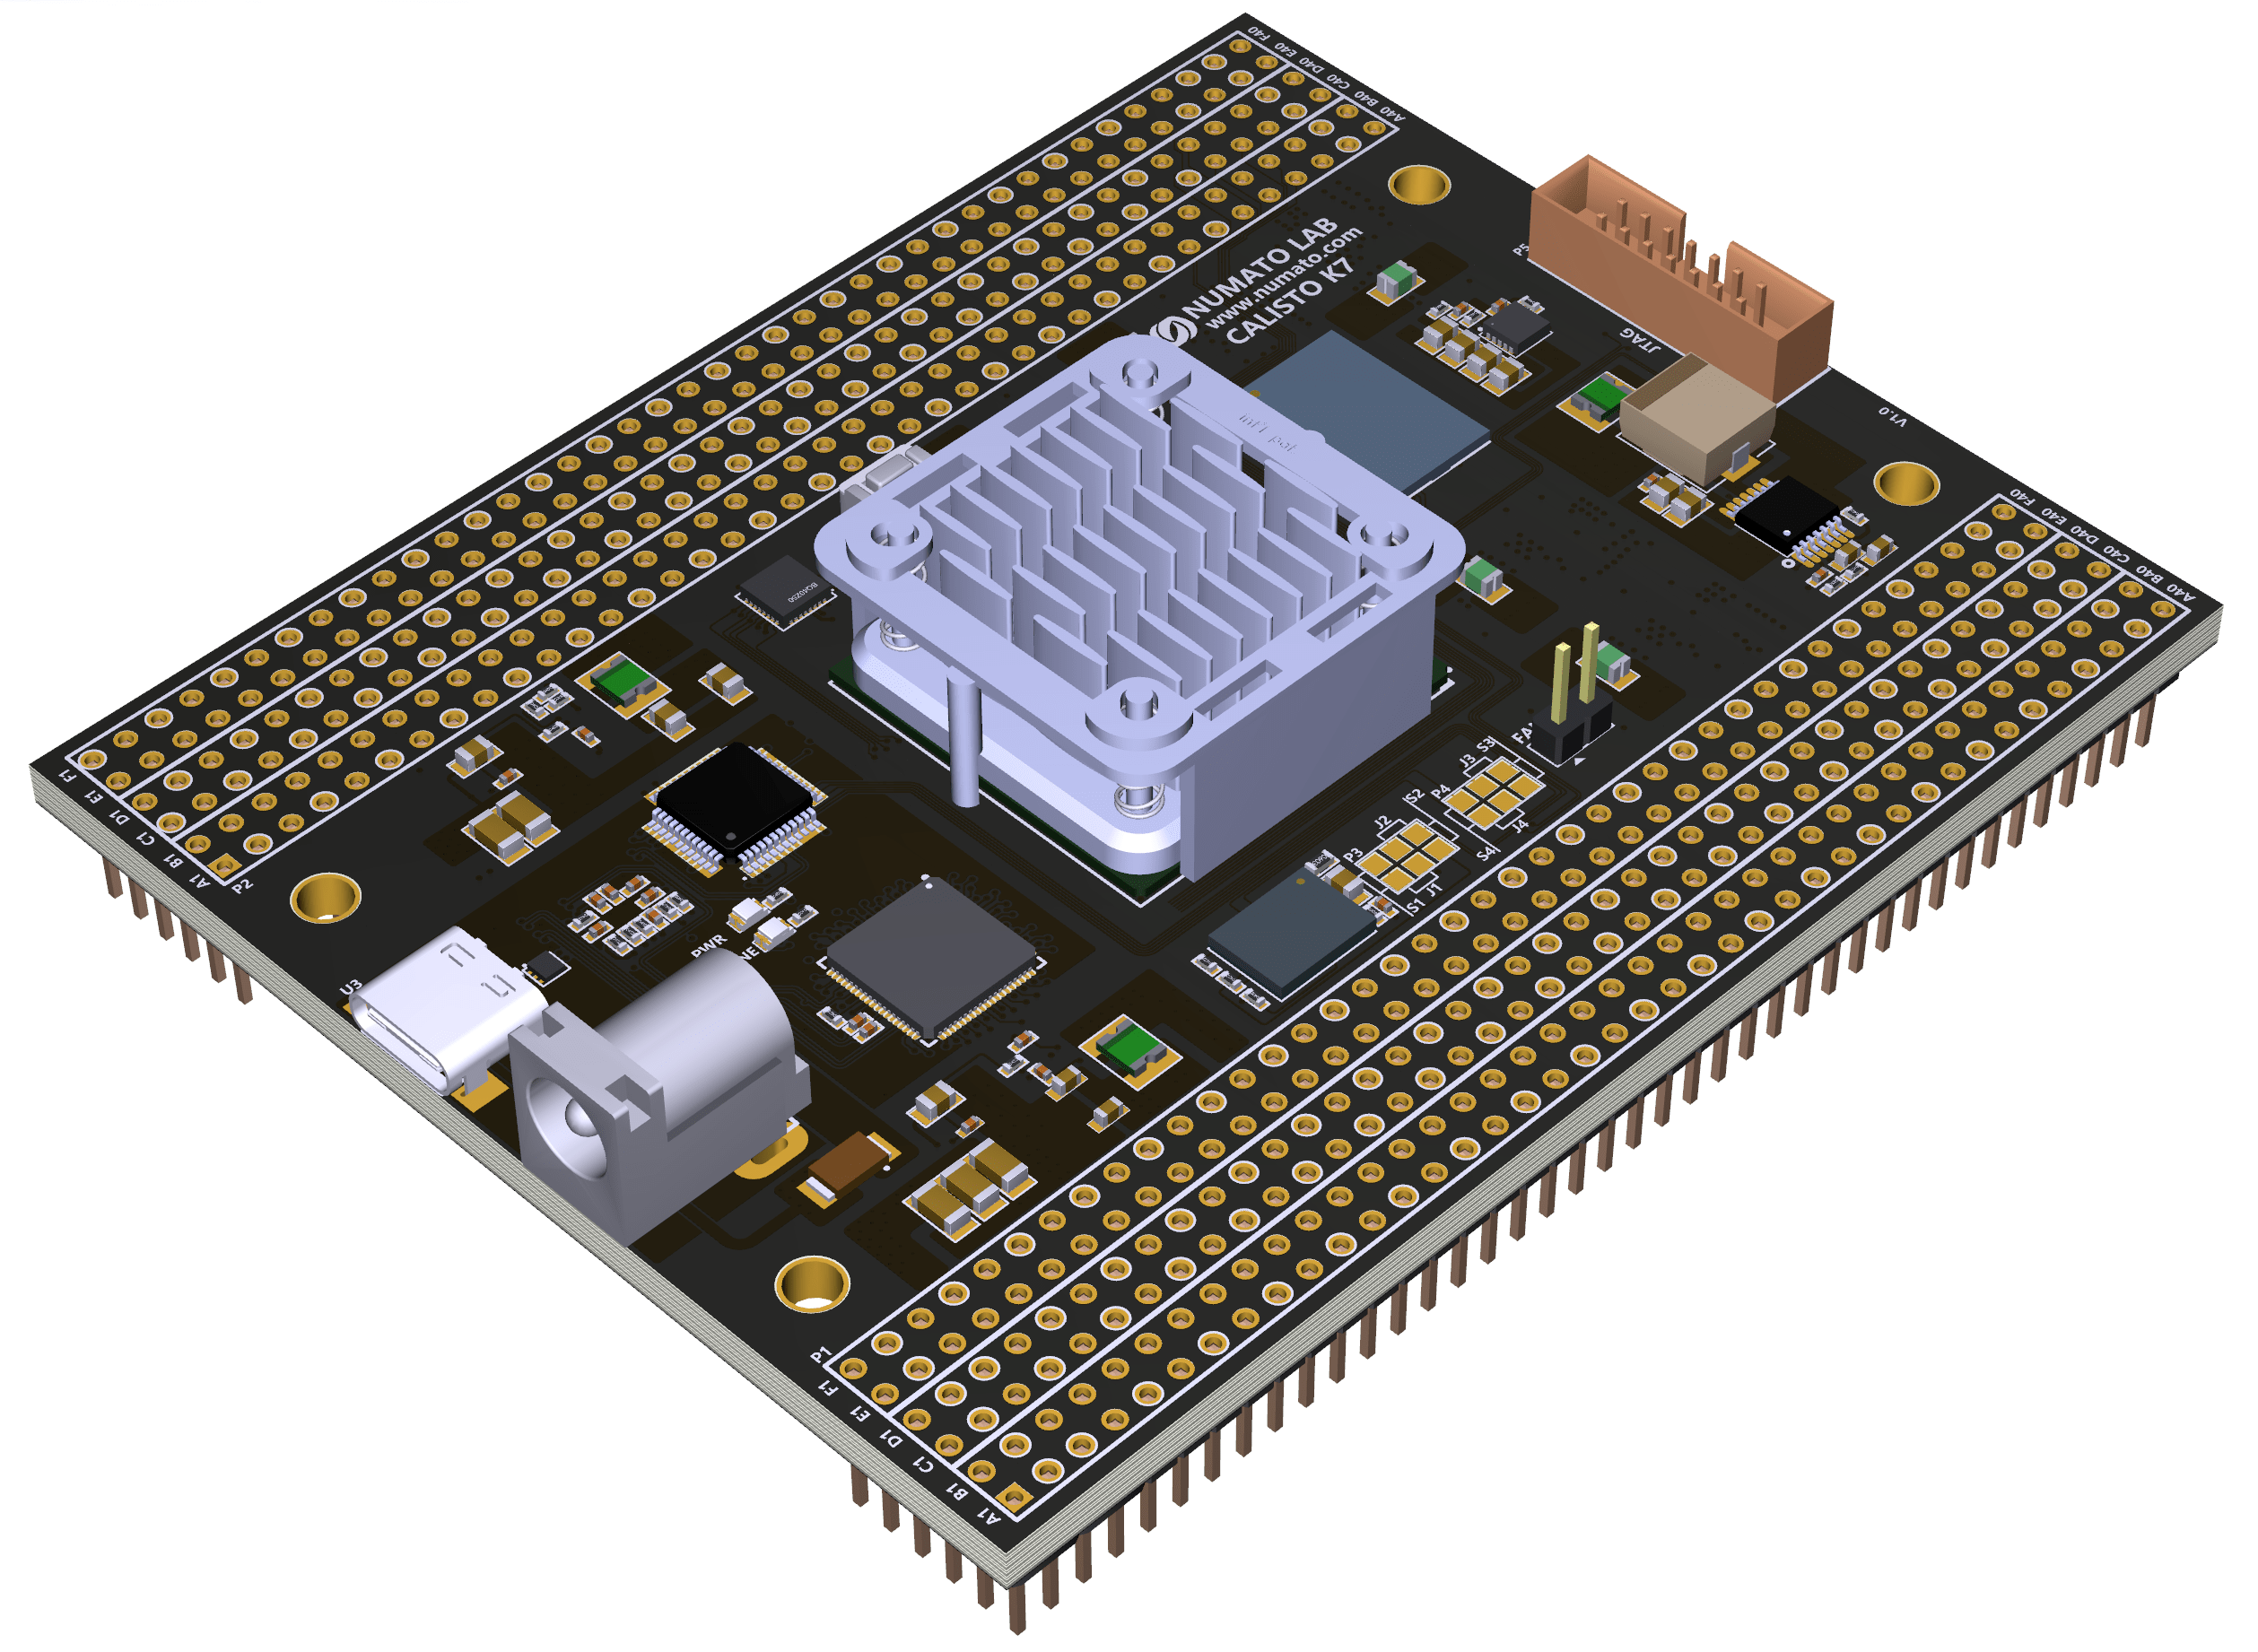 Figure 1 - A Rendering of Callisto K7 USB3.0 Kintex 7 FPGA Module from Numato Lab [Courtesy Numato Systems Pvt. Ltd.]